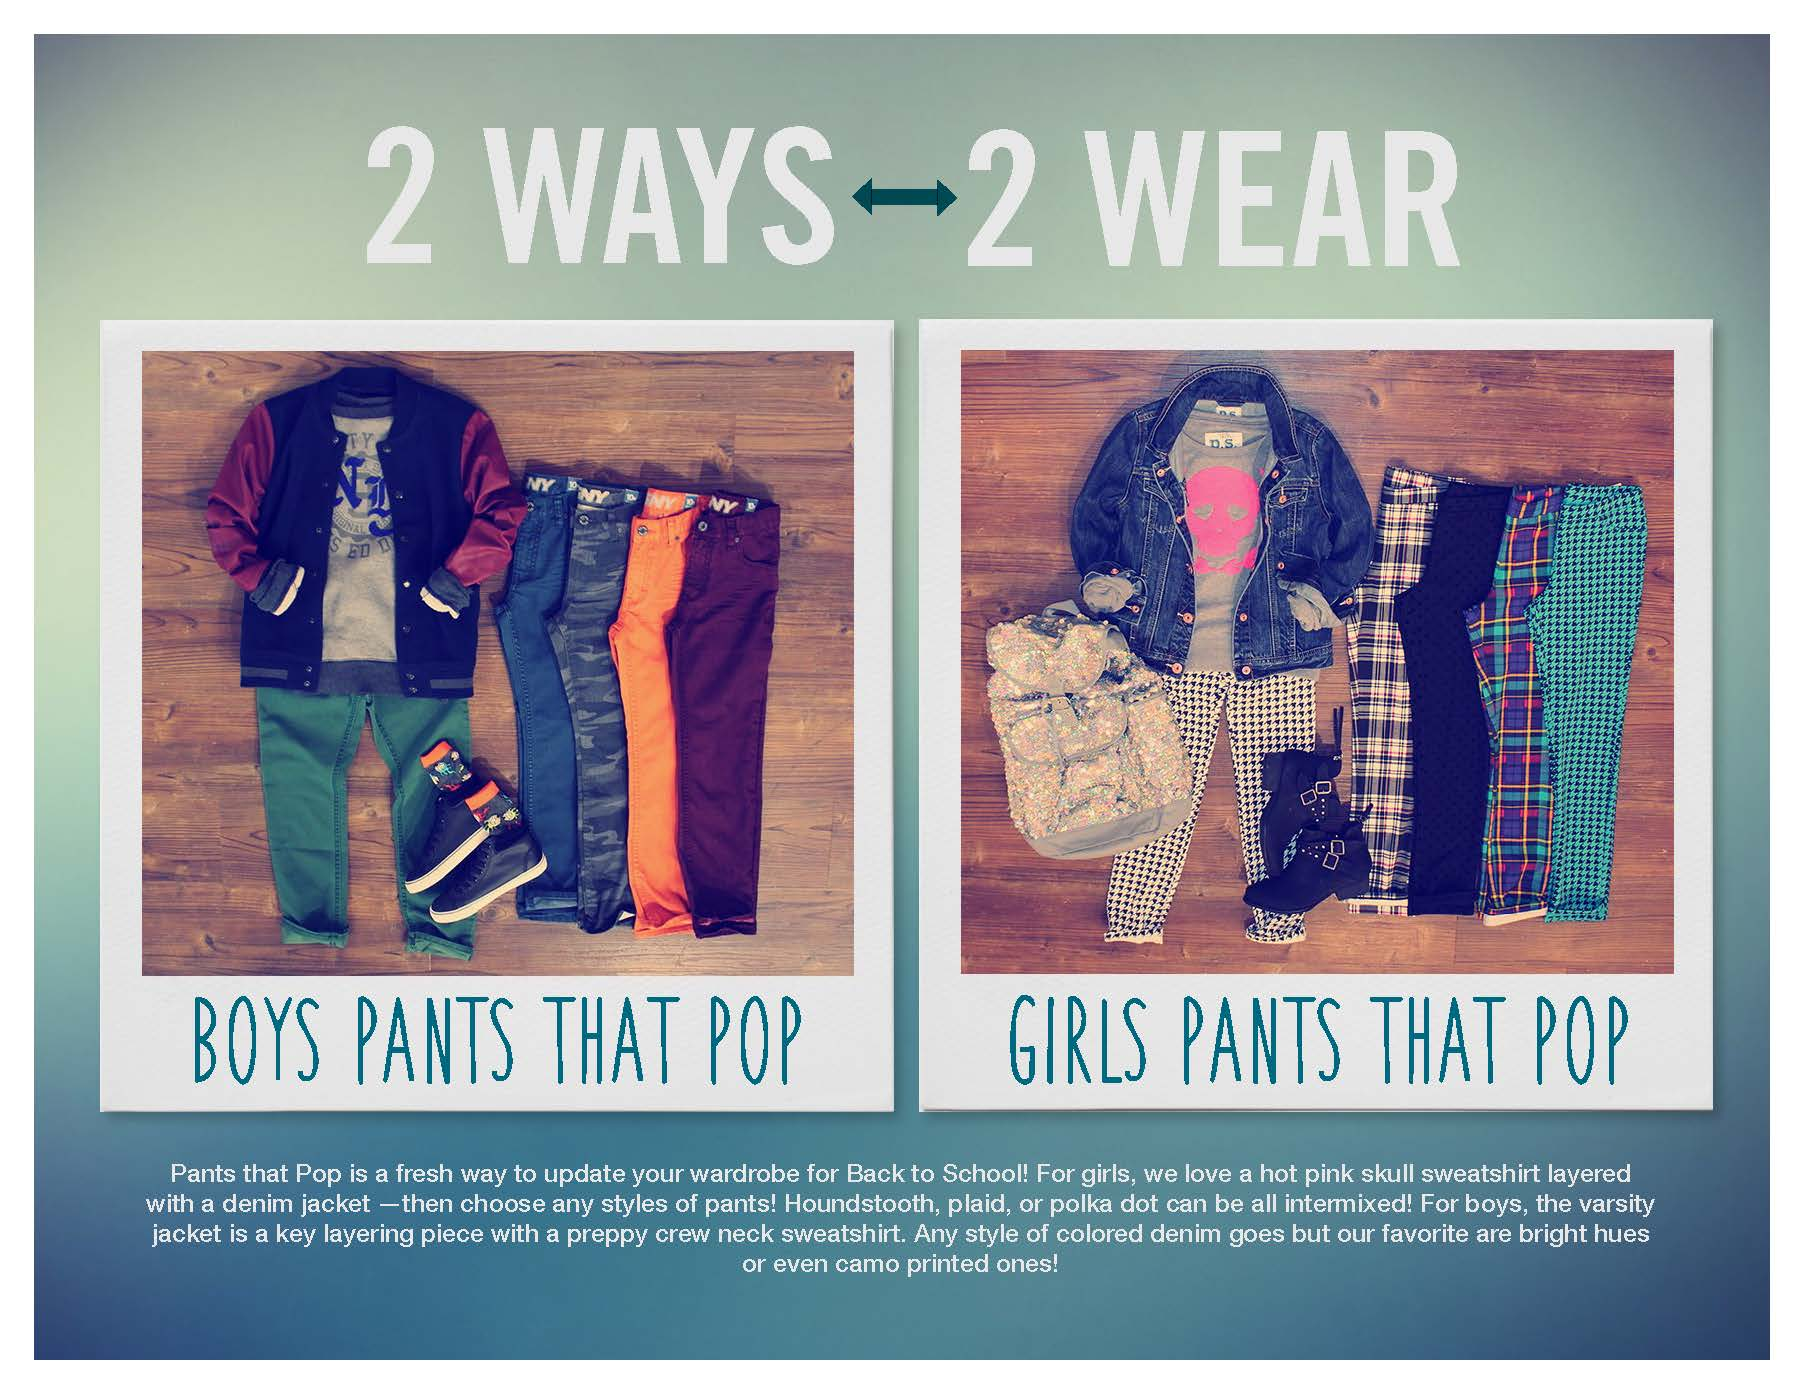 2 Ways 2 Wear - BTS